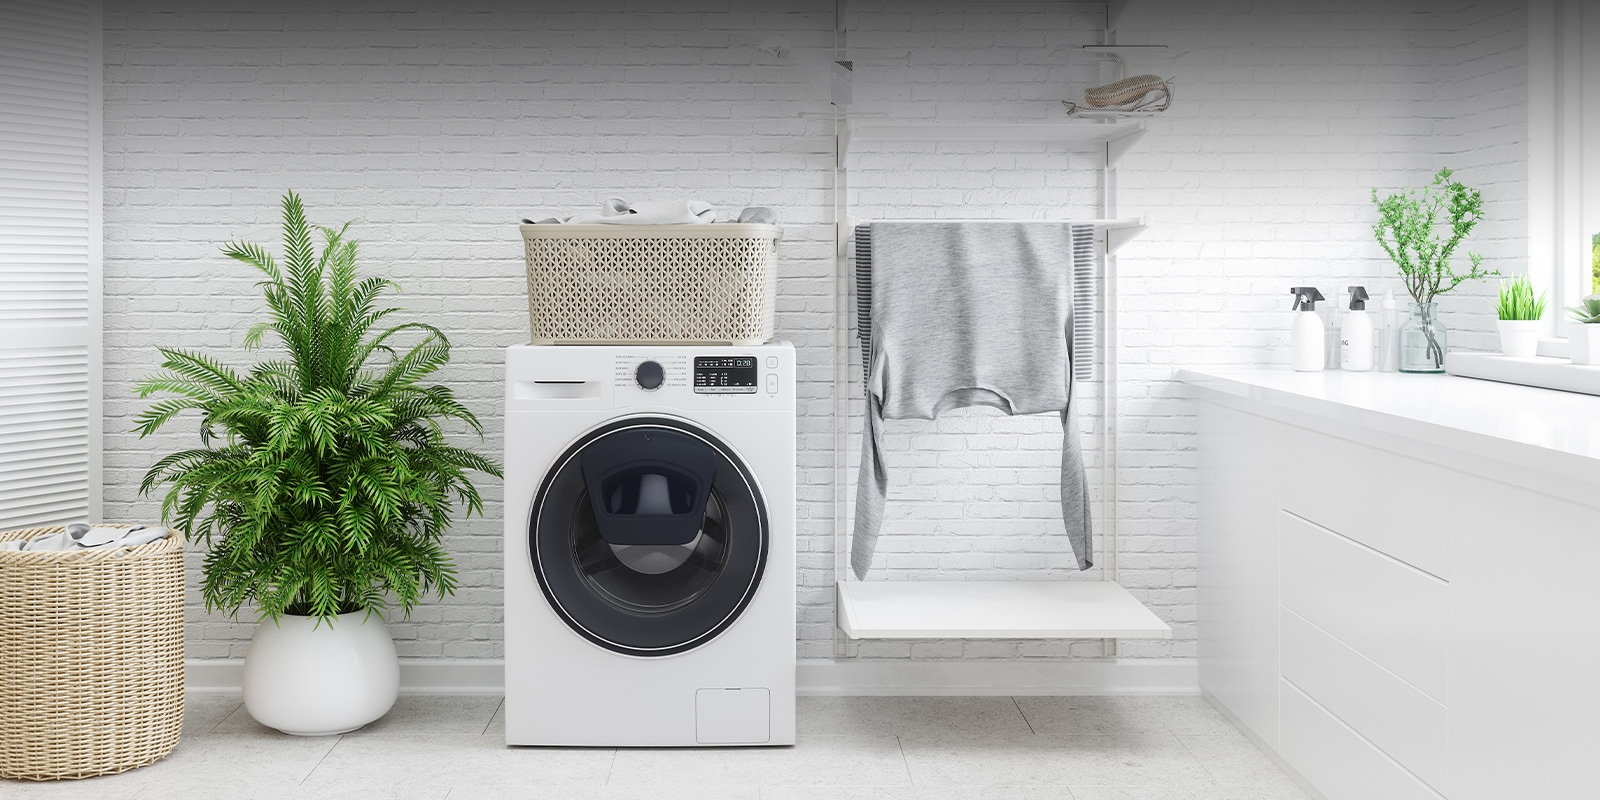 Image with washing machine and drying rack in laundry room